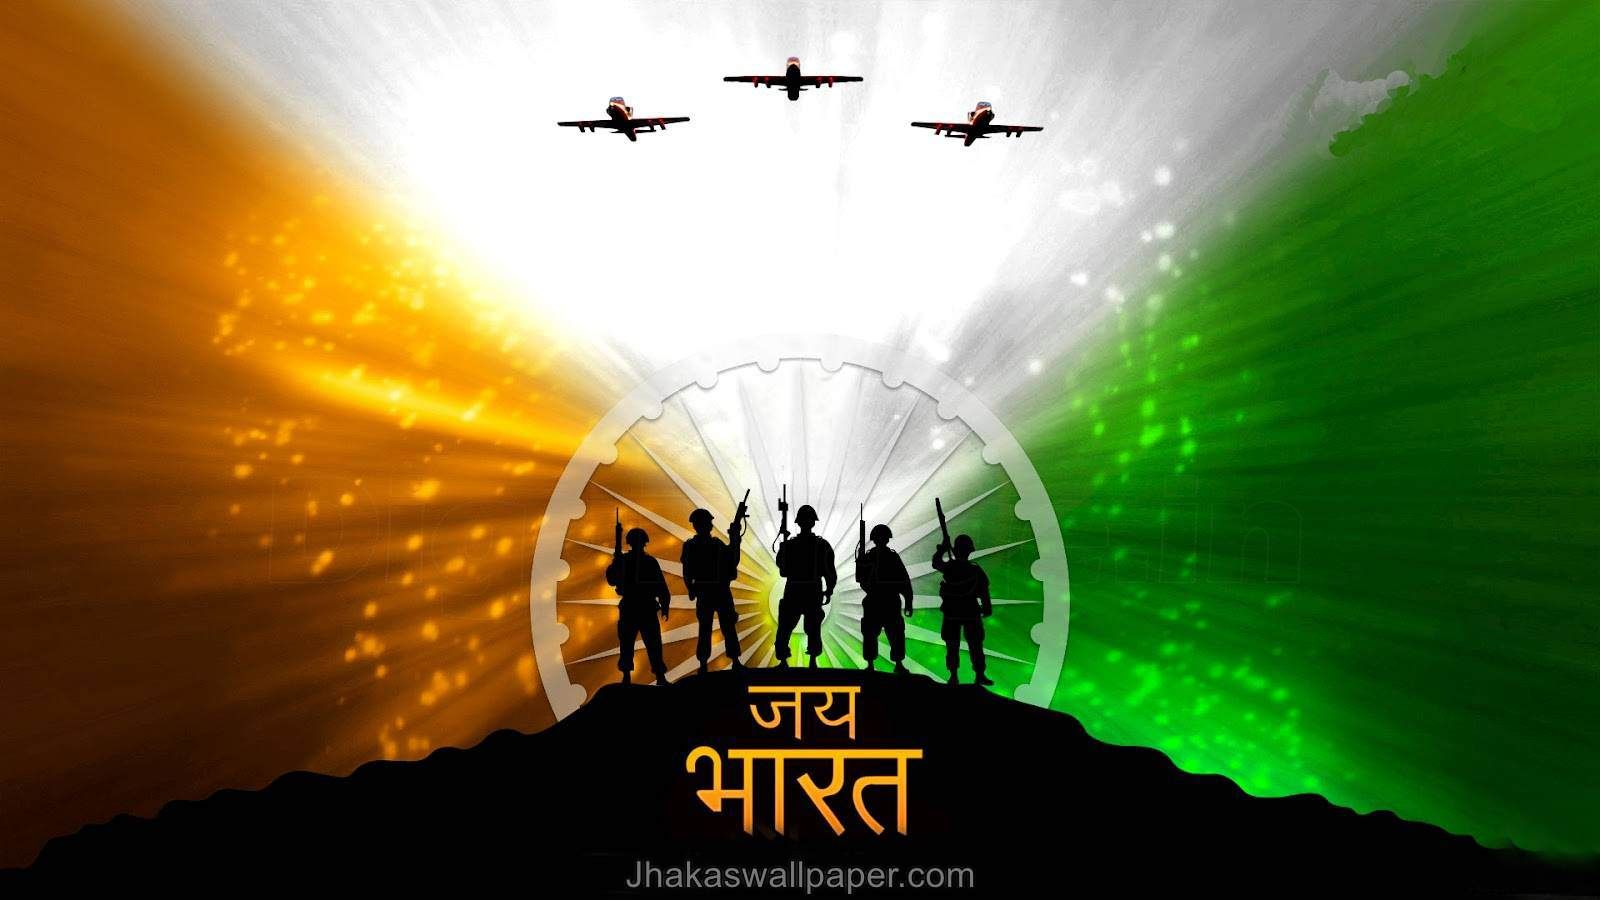 Independence Day Flag Independence Day Photos Republic Day Independence Day Images